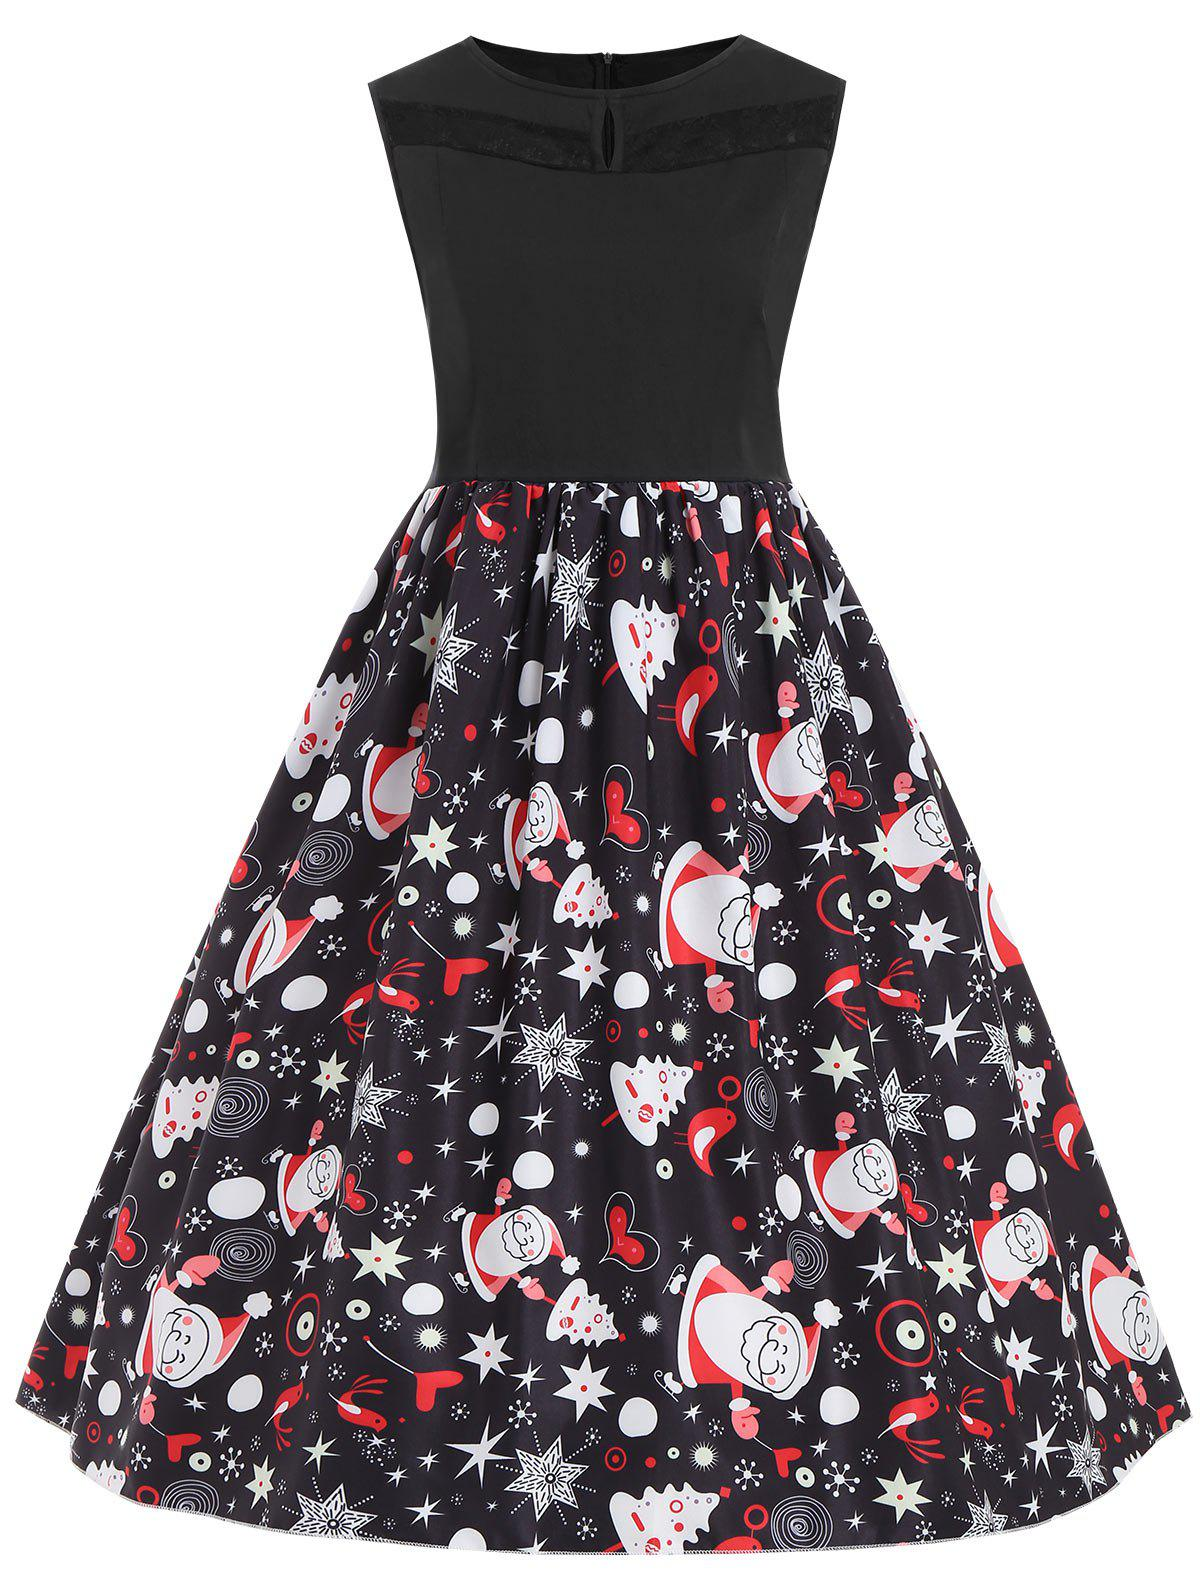 Christmas Santa Claus Plus Size Sleeveless DressWOMEN<br><br>Size: 5XL; Color: BLACK; Style: Vintage; Material: Polyester; Silhouette: A-Line; Dresses Length: Knee-Length; Neckline: Round Collar; Sleeve Length: Sleeveless; Embellishment: Lace; Pattern Type: Plant,Star; With Belt: No; Season: Fall,Winter; Weight: 0.2800kg; Package Contents: 1 x Dress;